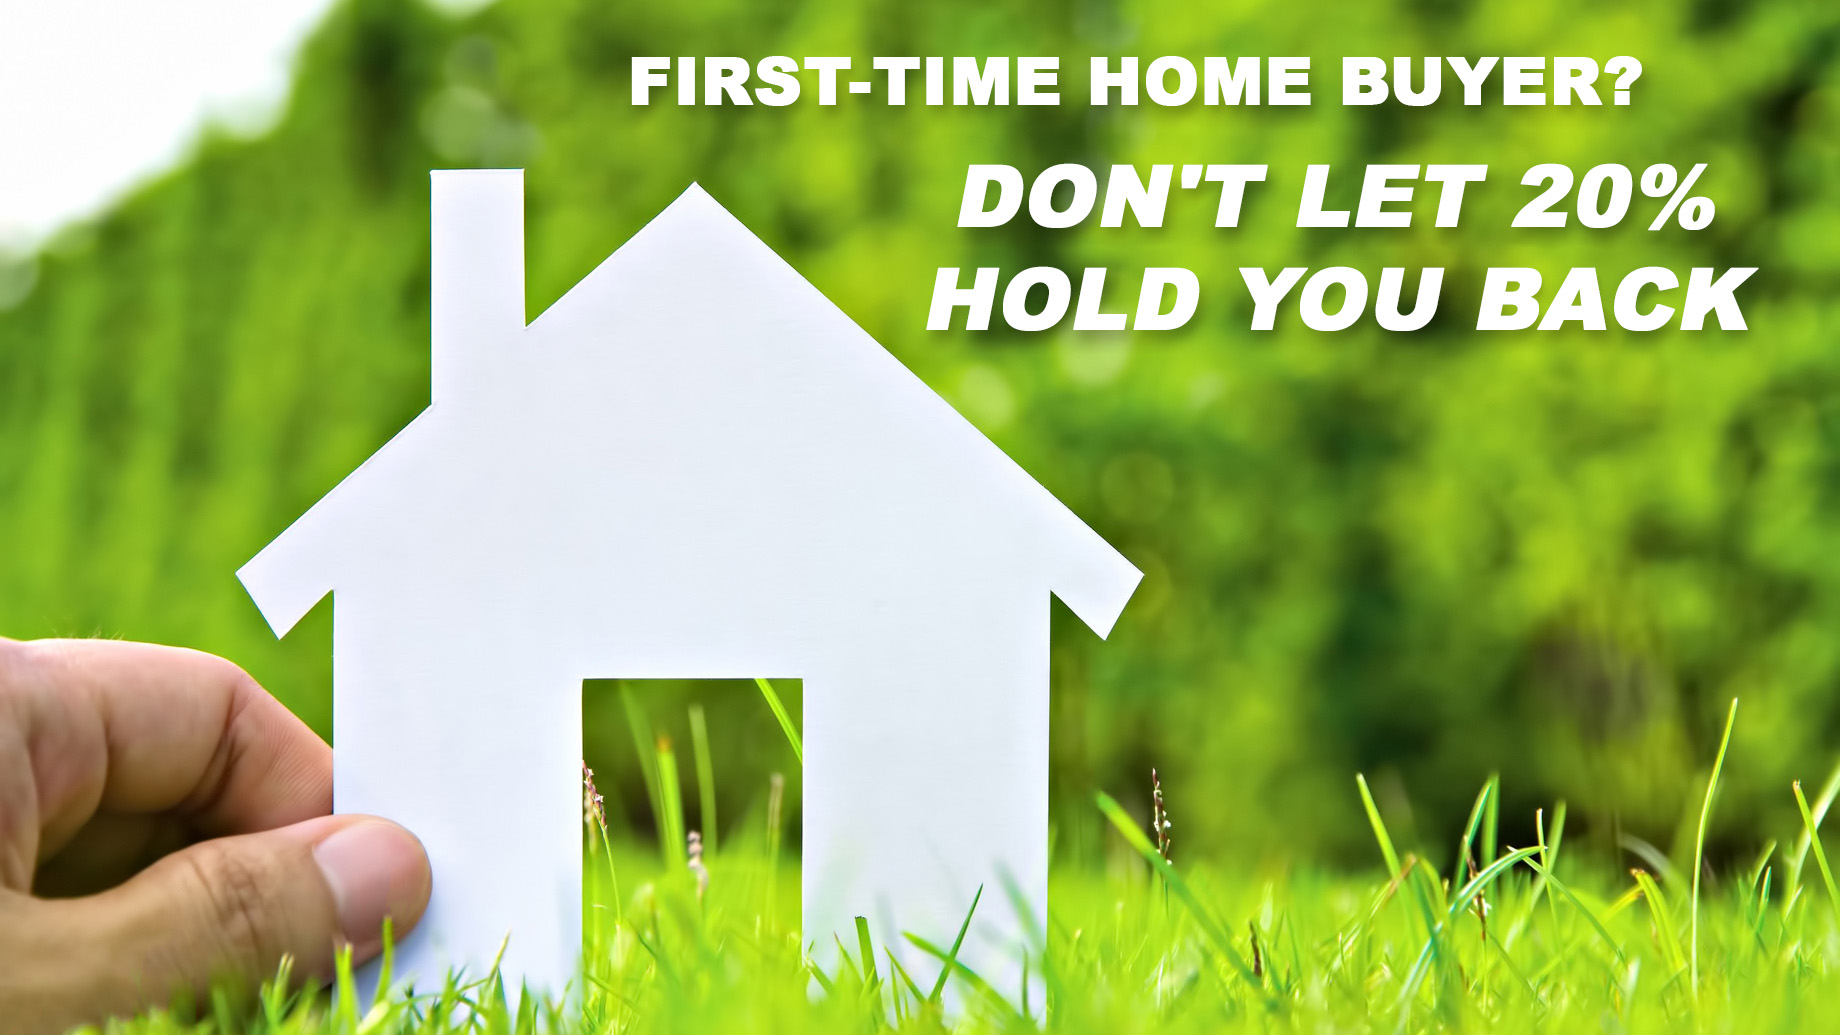 First-Time Home Buyer? Don't Let 20 Percent Hold You Back